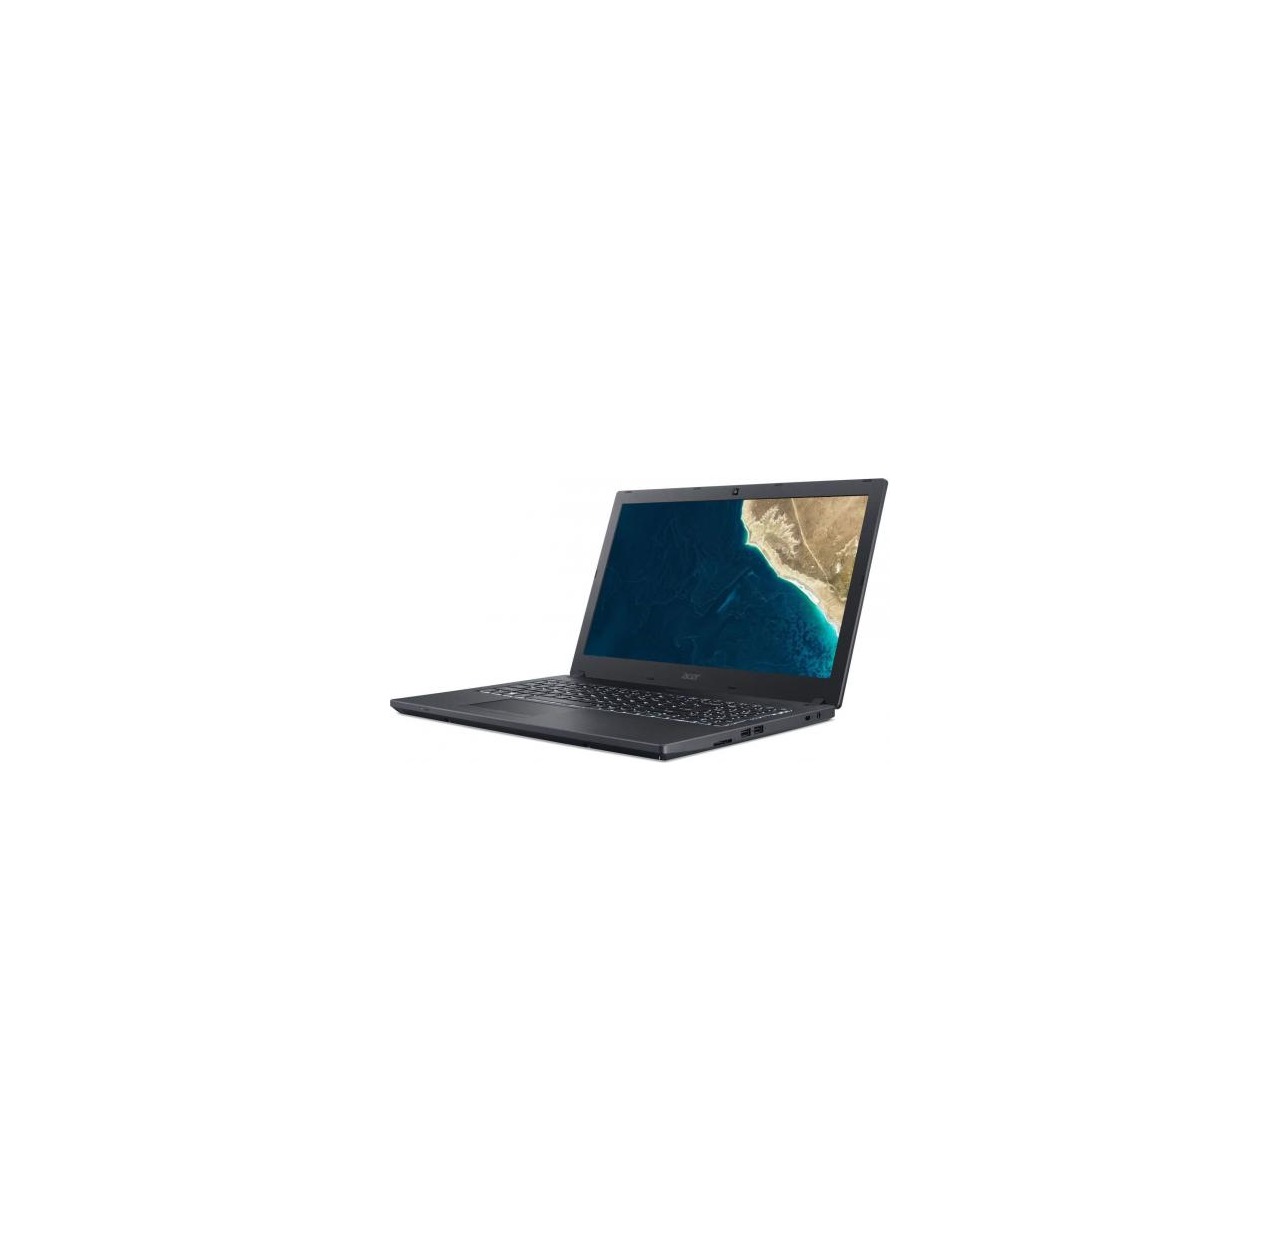 "Laptop ACER TMP2510-G2-M-33AA / Intel® Core™ i3-8130U / 15.6"" FHD Acer ComfyView LED LCD / U"